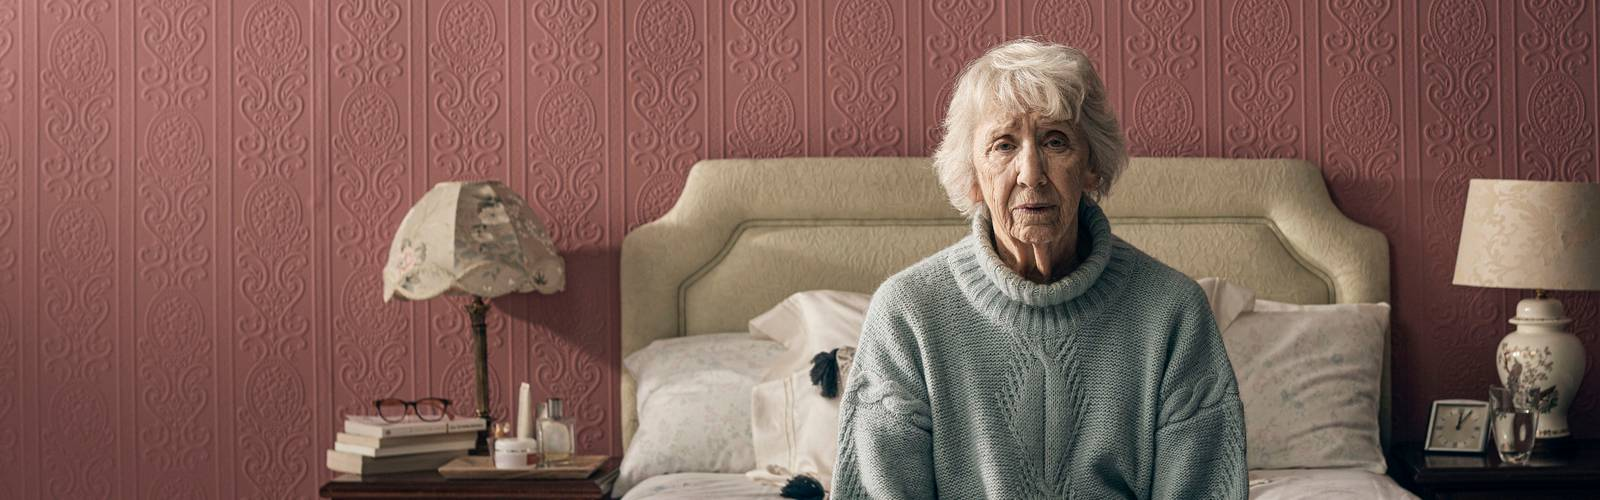 An older woman sits alone on her bed, looking worried